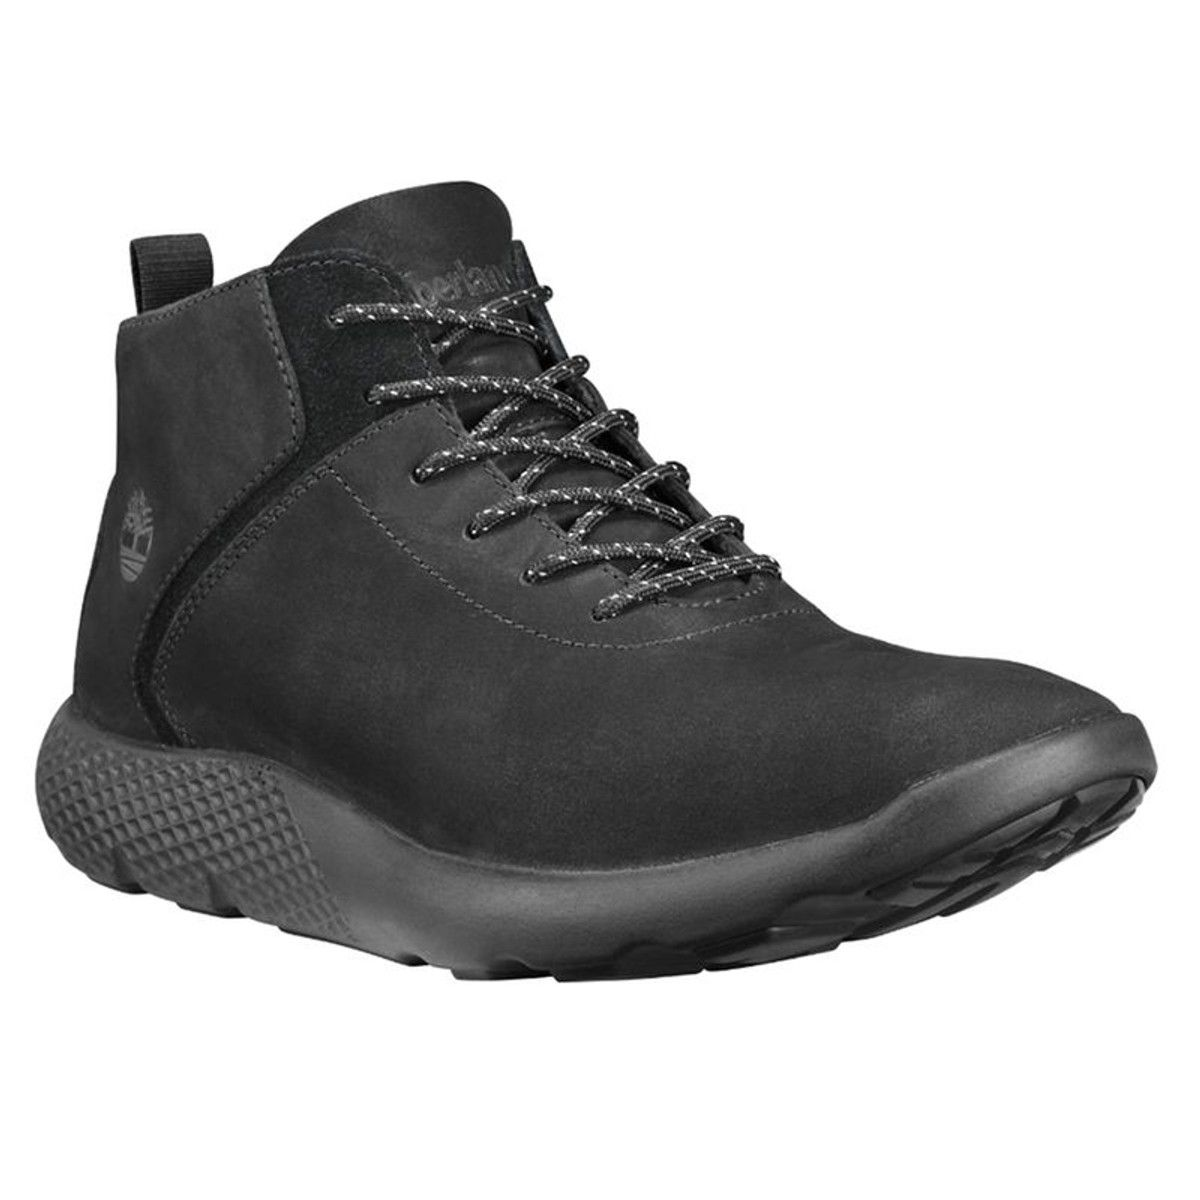 Boots FlyRoam Super Ox | Products en 2019 | Chaussure